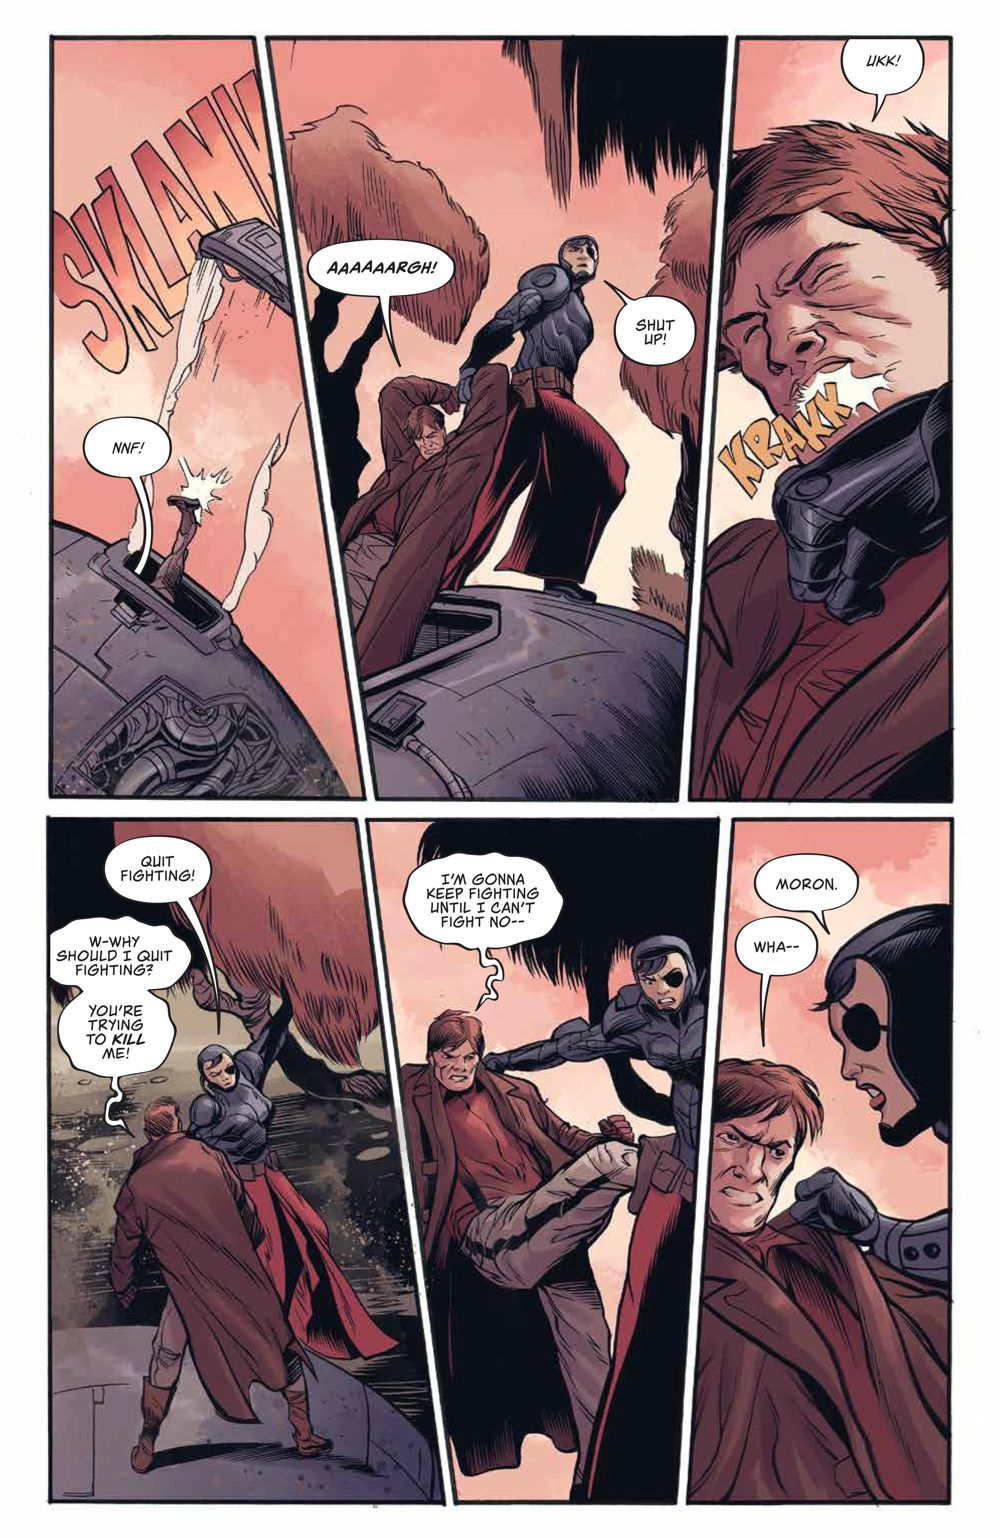 Firefly_UnificationWar_v2_SC_PRESS_22 ComicList Previews: FIREFLY THE UNIFICATION WAR VOLUME 2 TP